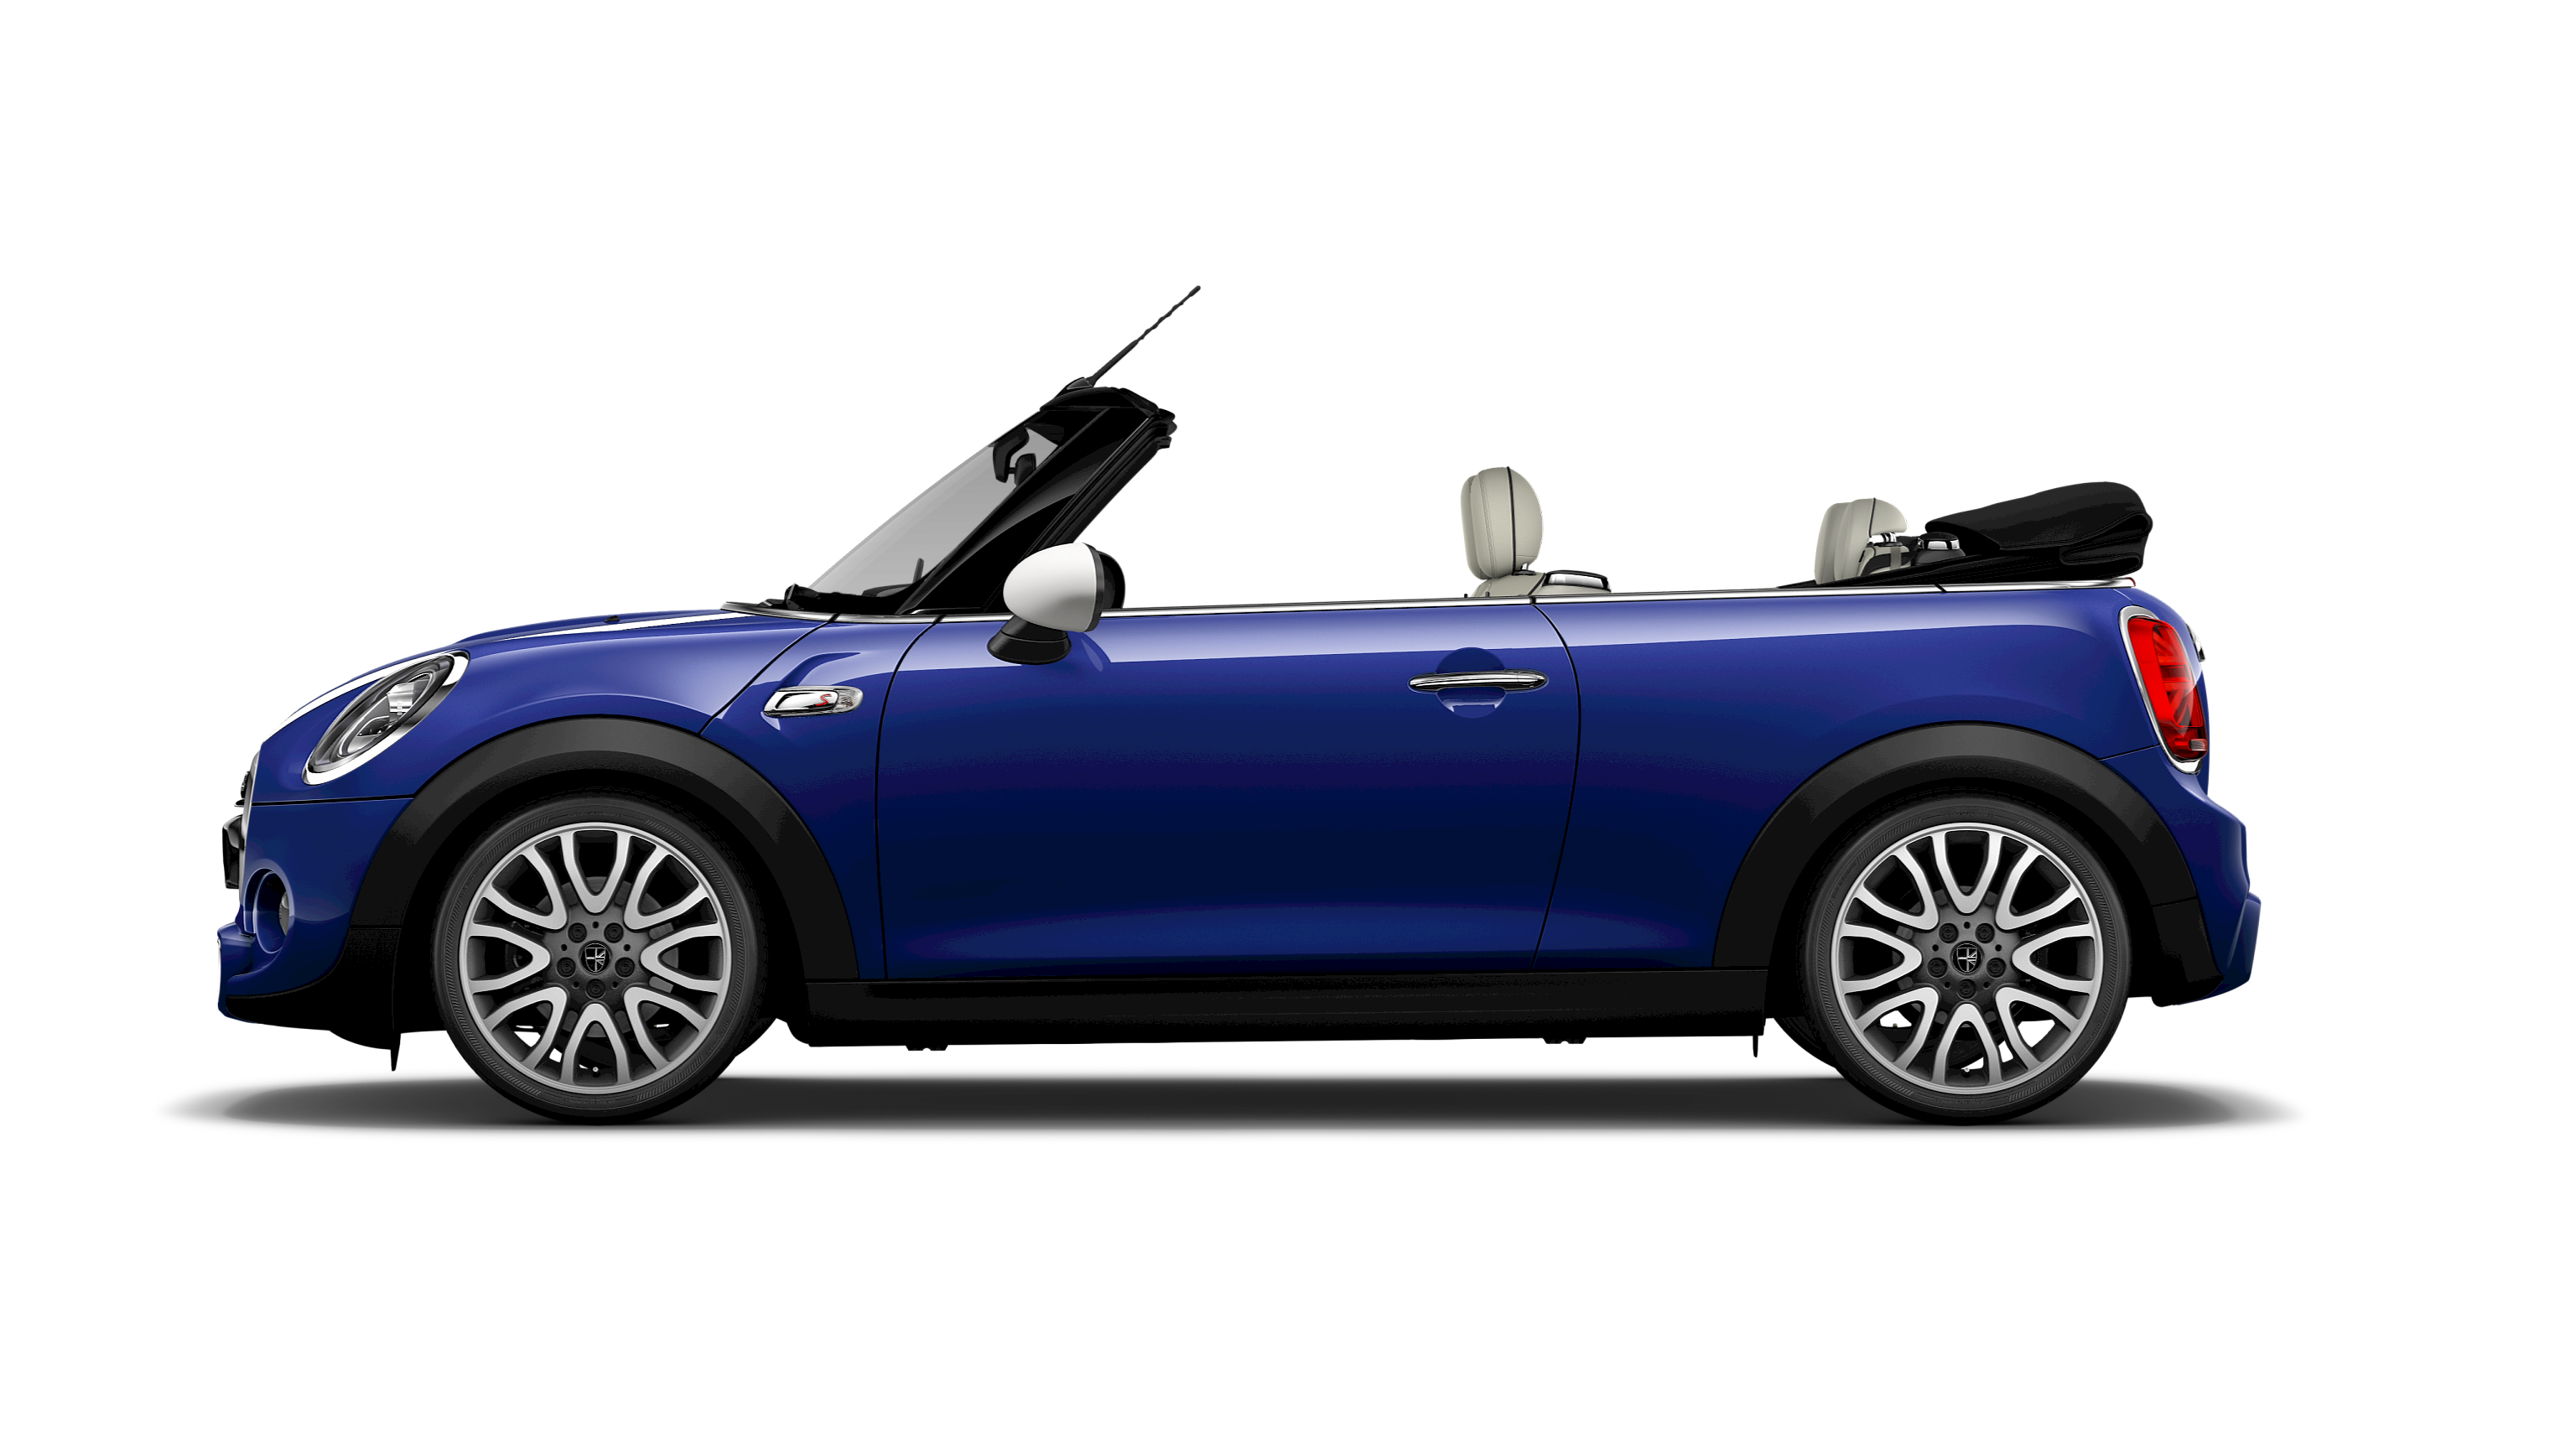 MINI CABRIO VISTA LATERAL